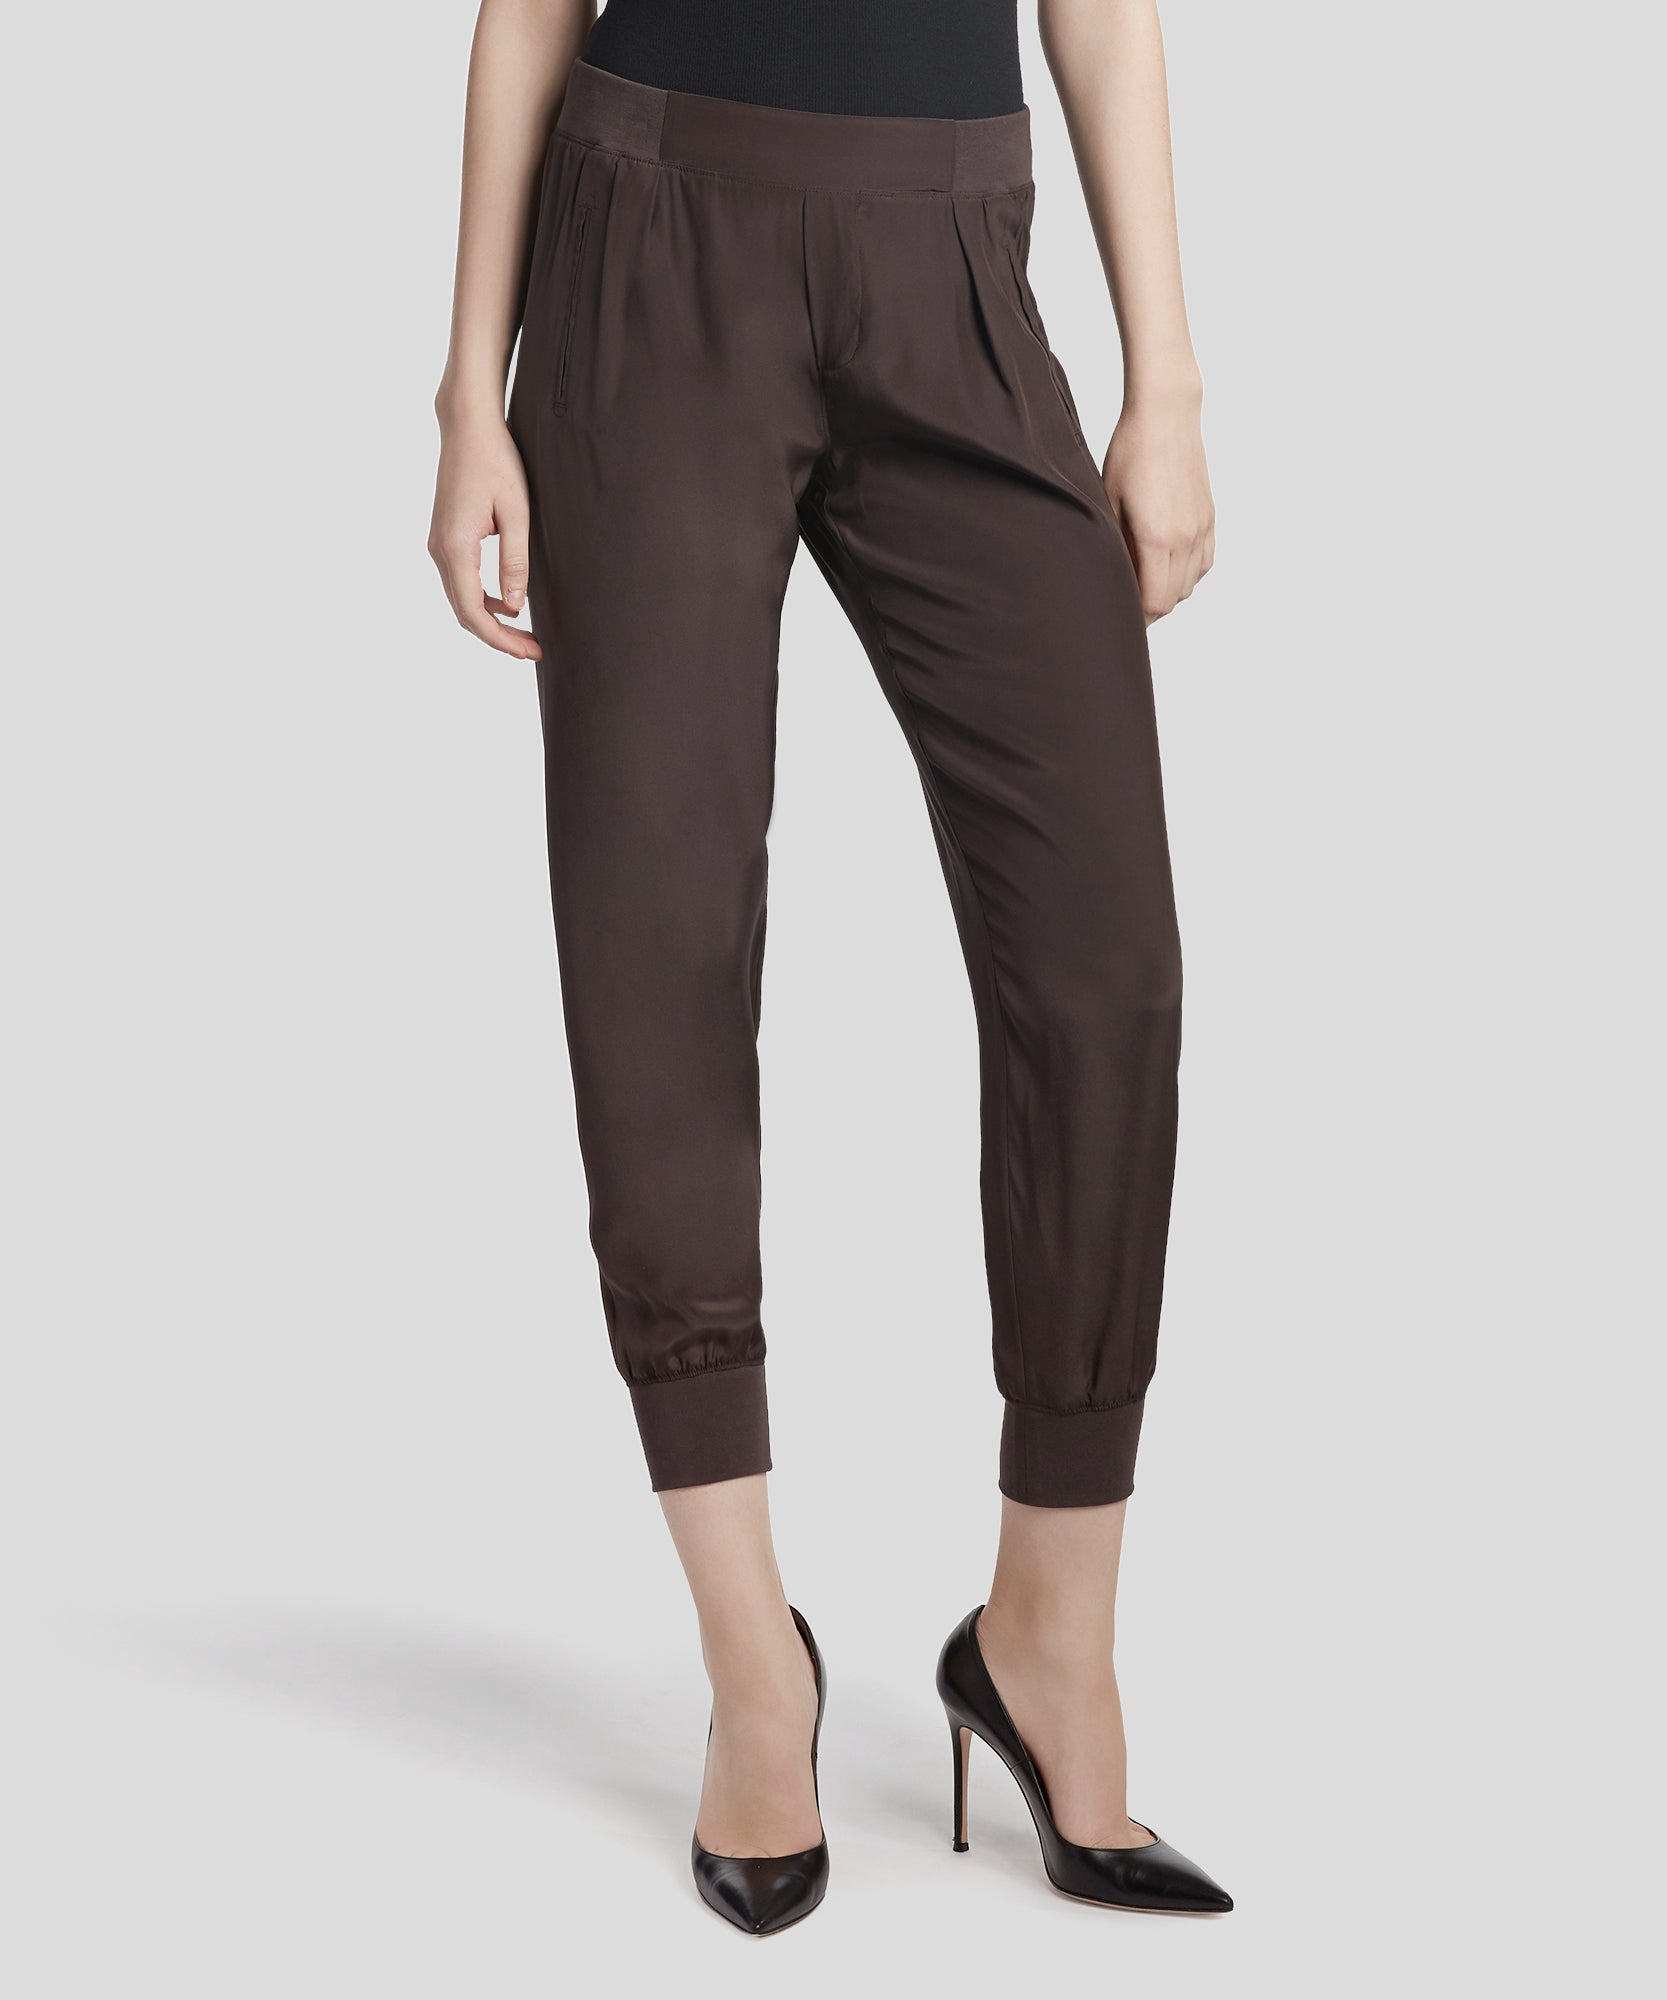 Dark Chocolate Silk Sweatpants - Women's Silk Pants ATM Anthony Thomas Melillo